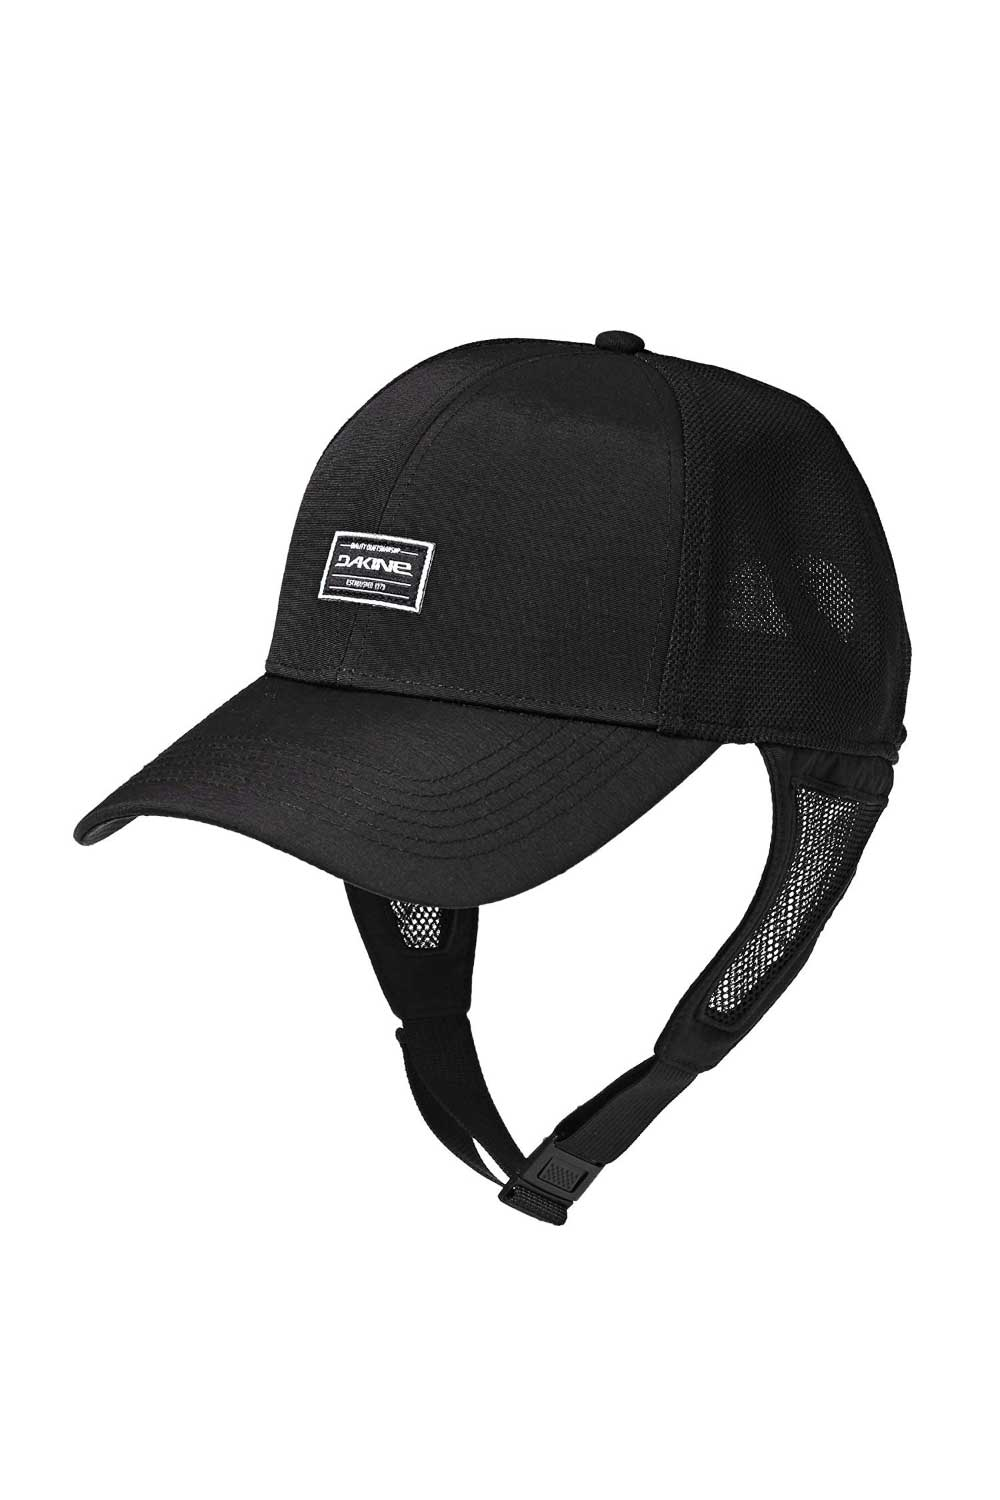 Dakine Surf Trucker Surfing Hat